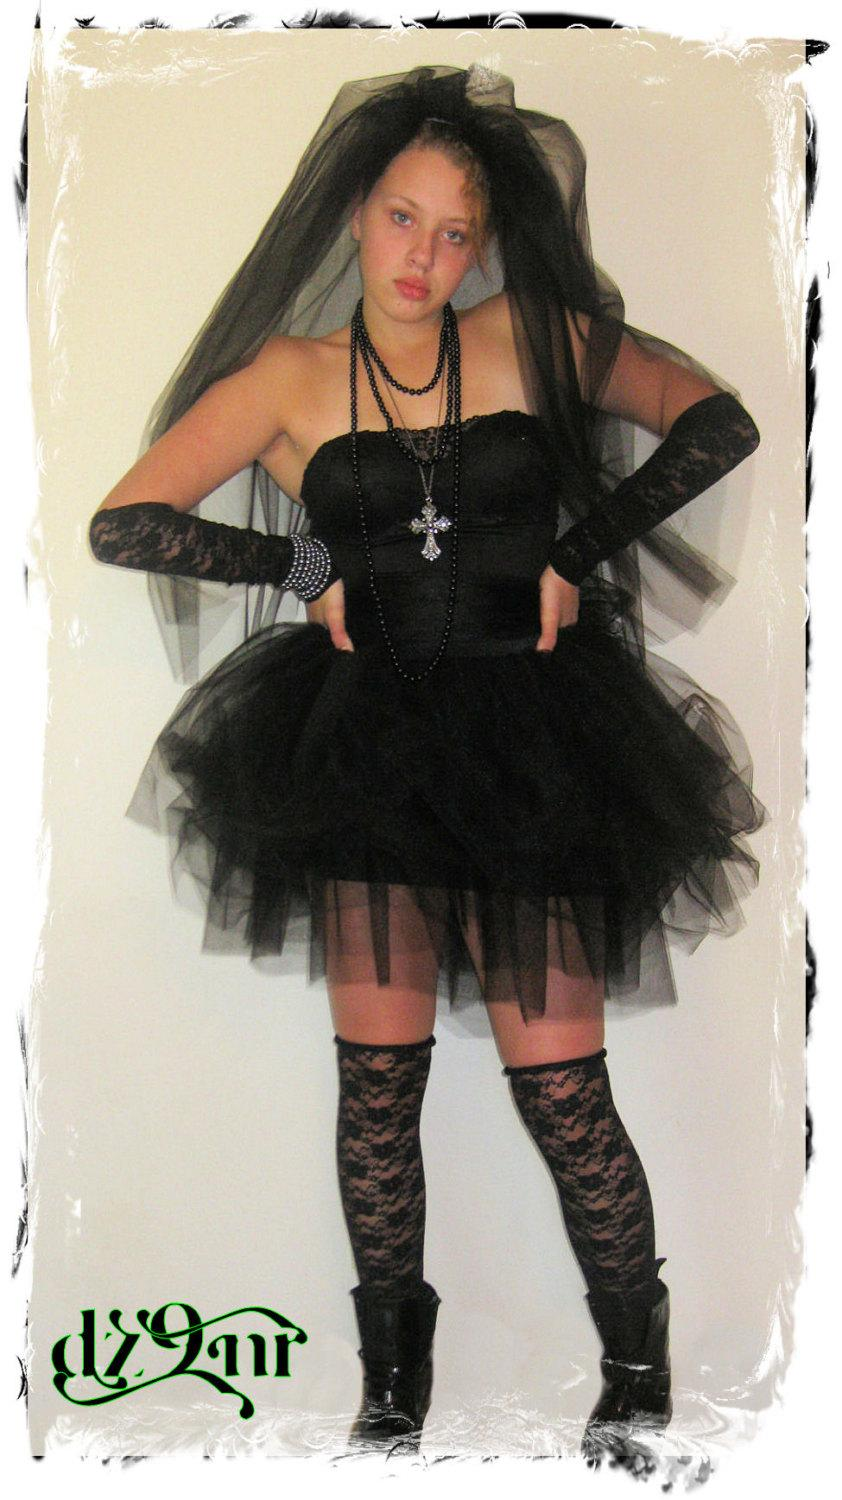 0d7fd5e556 Luxurious Black Rebel Adult Tulle Tutu n Corset- Great for Bachelorette/Bridesmaid  Party Fancy Dress Wedding Gown-80's Prom Mini